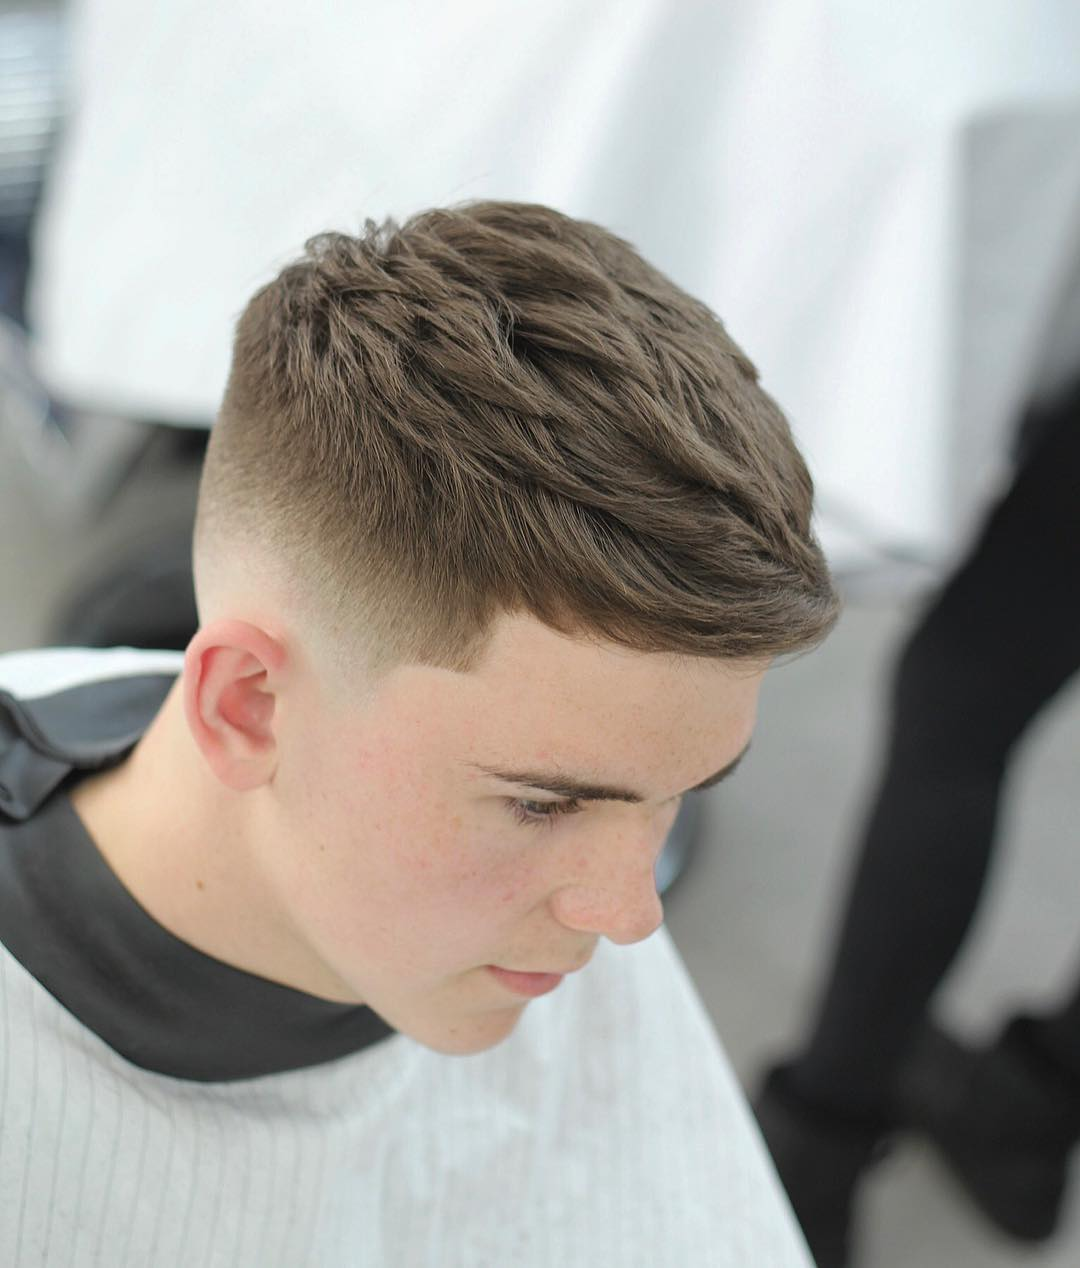 The Best Fade Haircut For Men